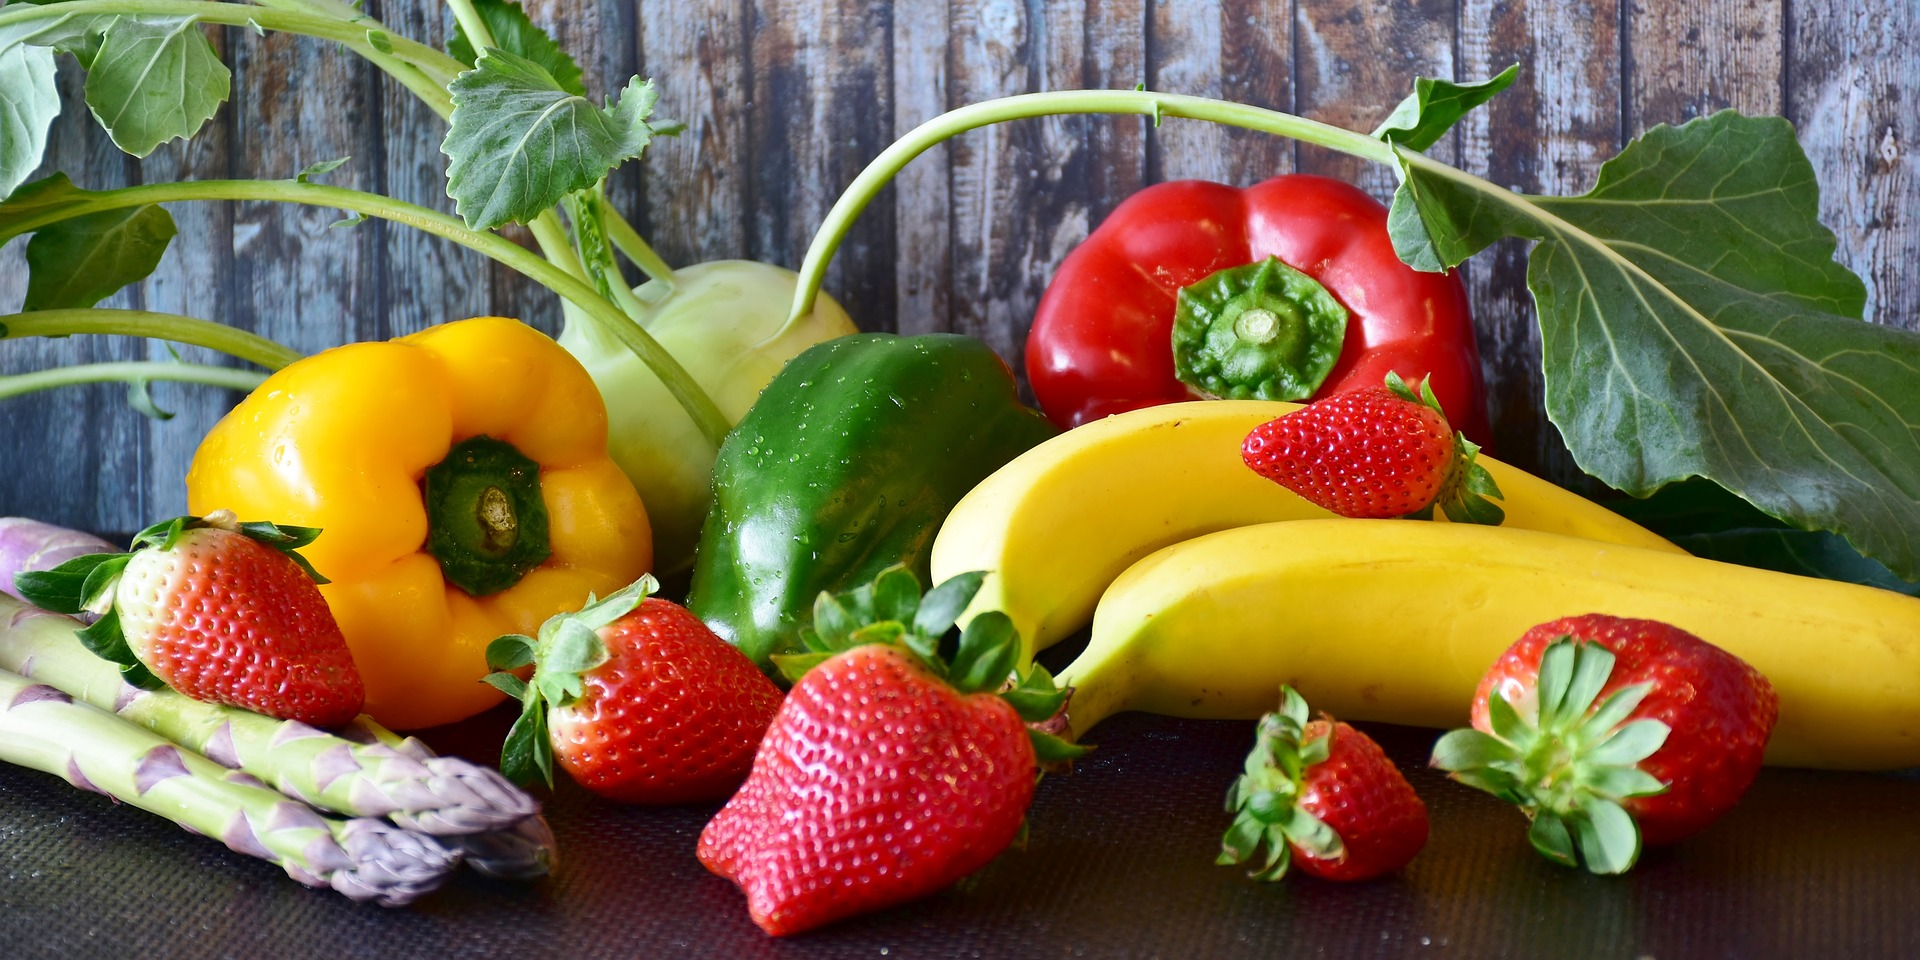 Determining The Nutritional Value Of Food